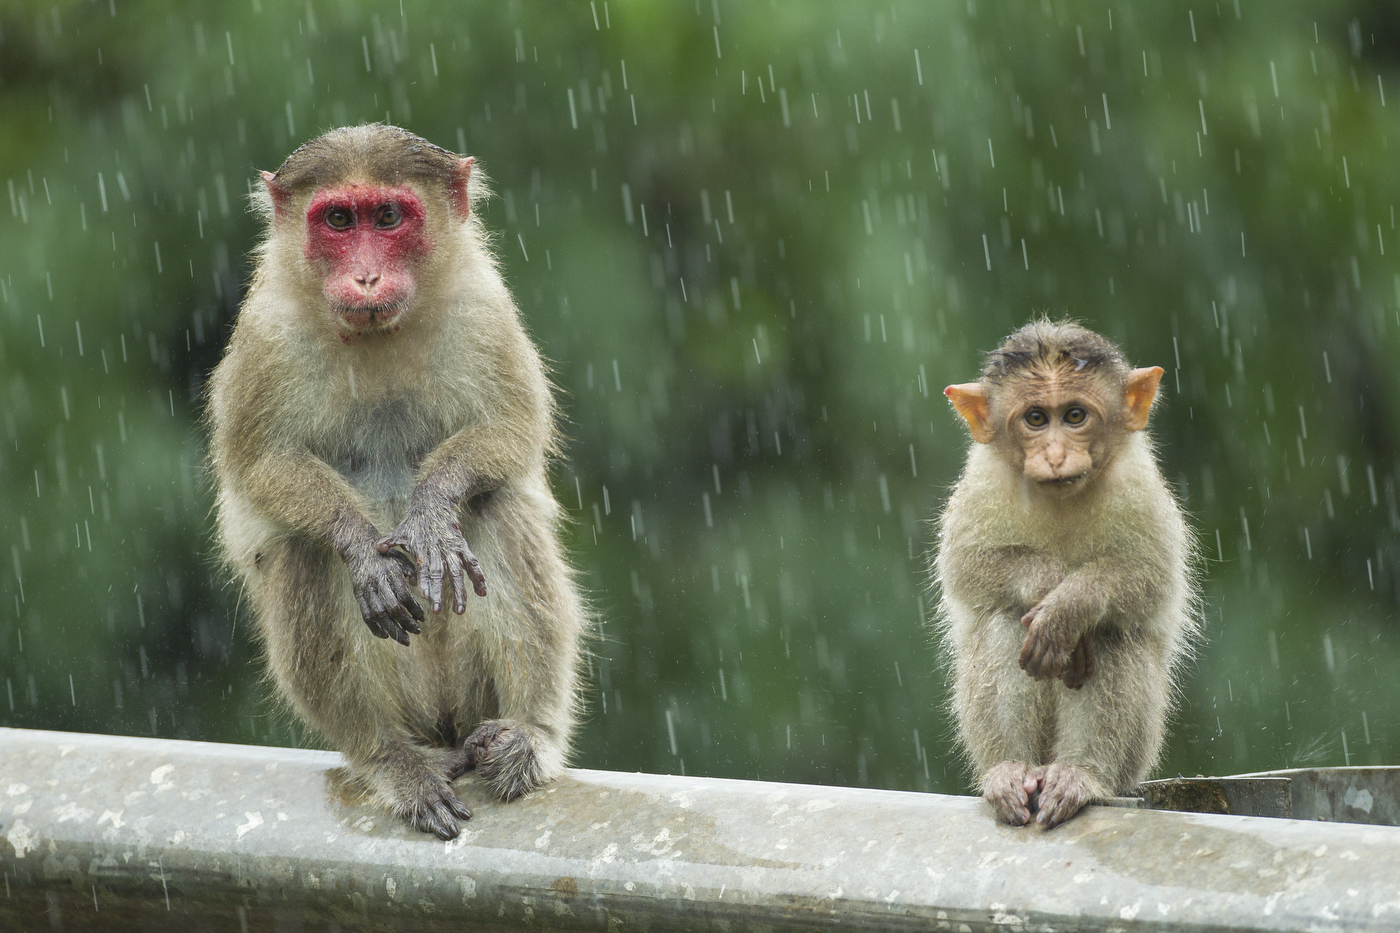 Macaques in rain_0274